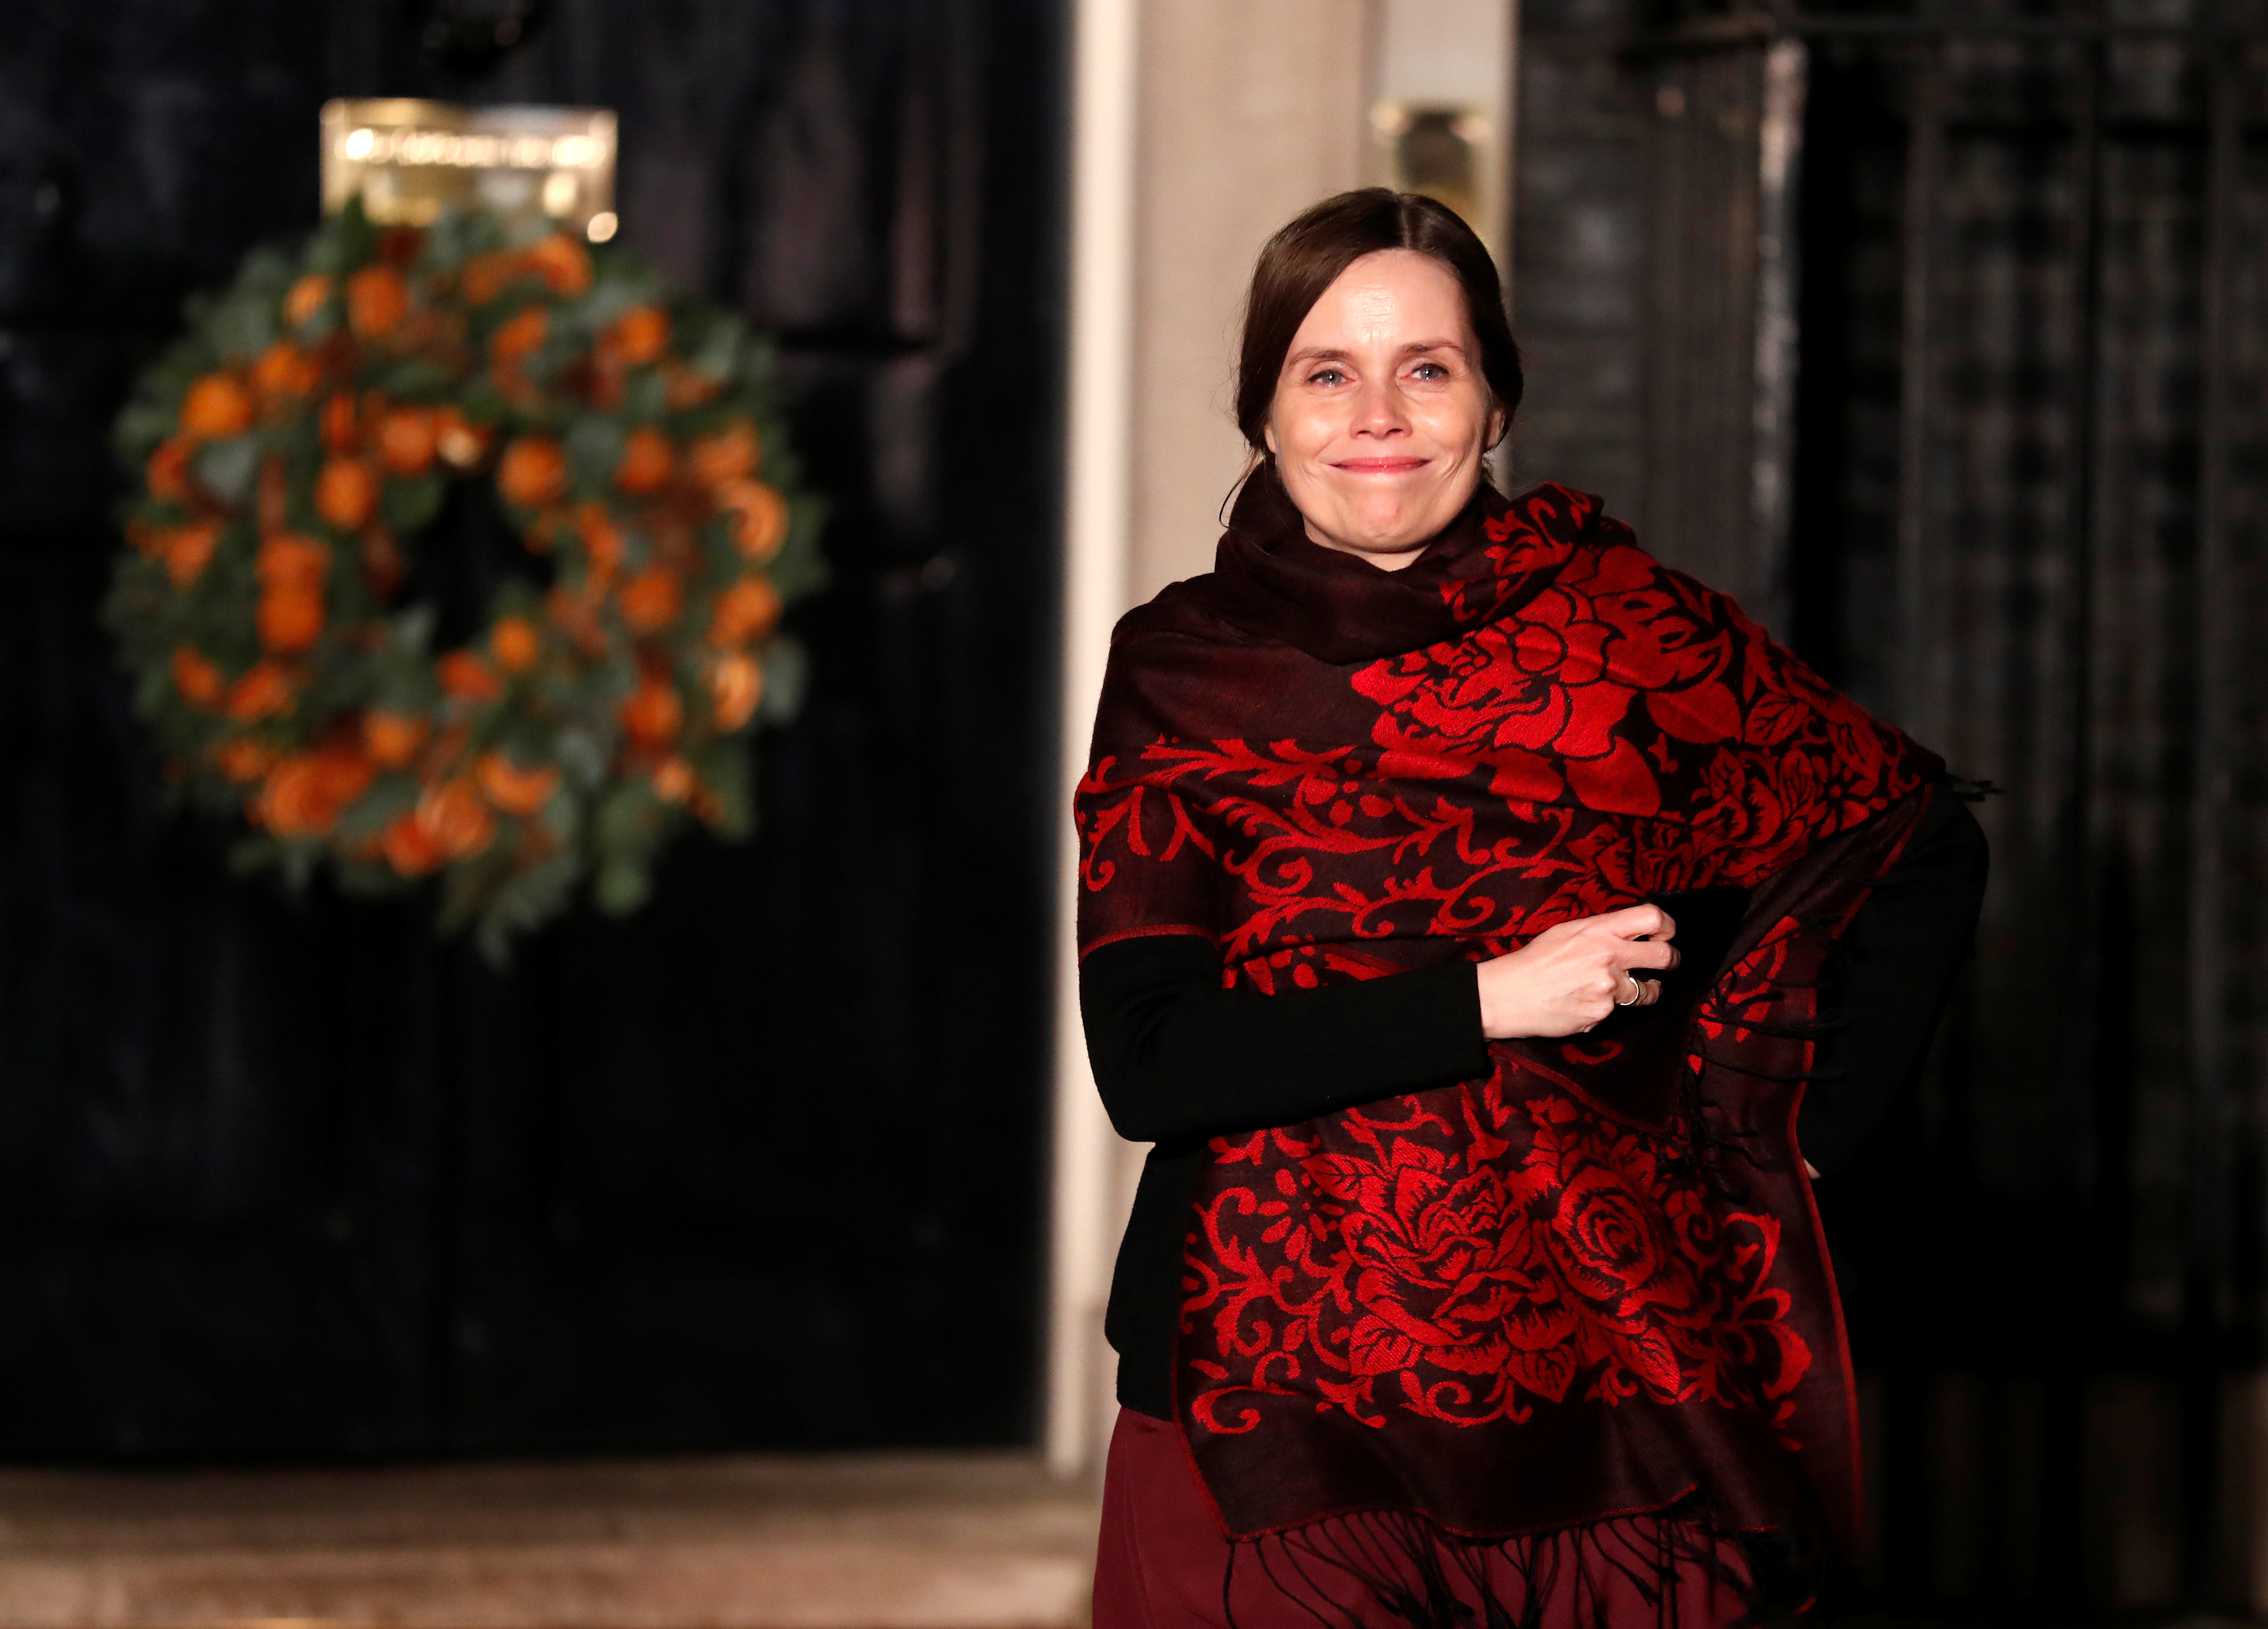 Iceland's Prime Minister Katrin Jakobsdottir leaves Downing Street after attending a reception hosted by Britian's Prime Minister Boris Johnson, ahead of the NATO summit in Watford, in London, Britain, December 3, 2019. Alastair Grant/Pool via REUTERS